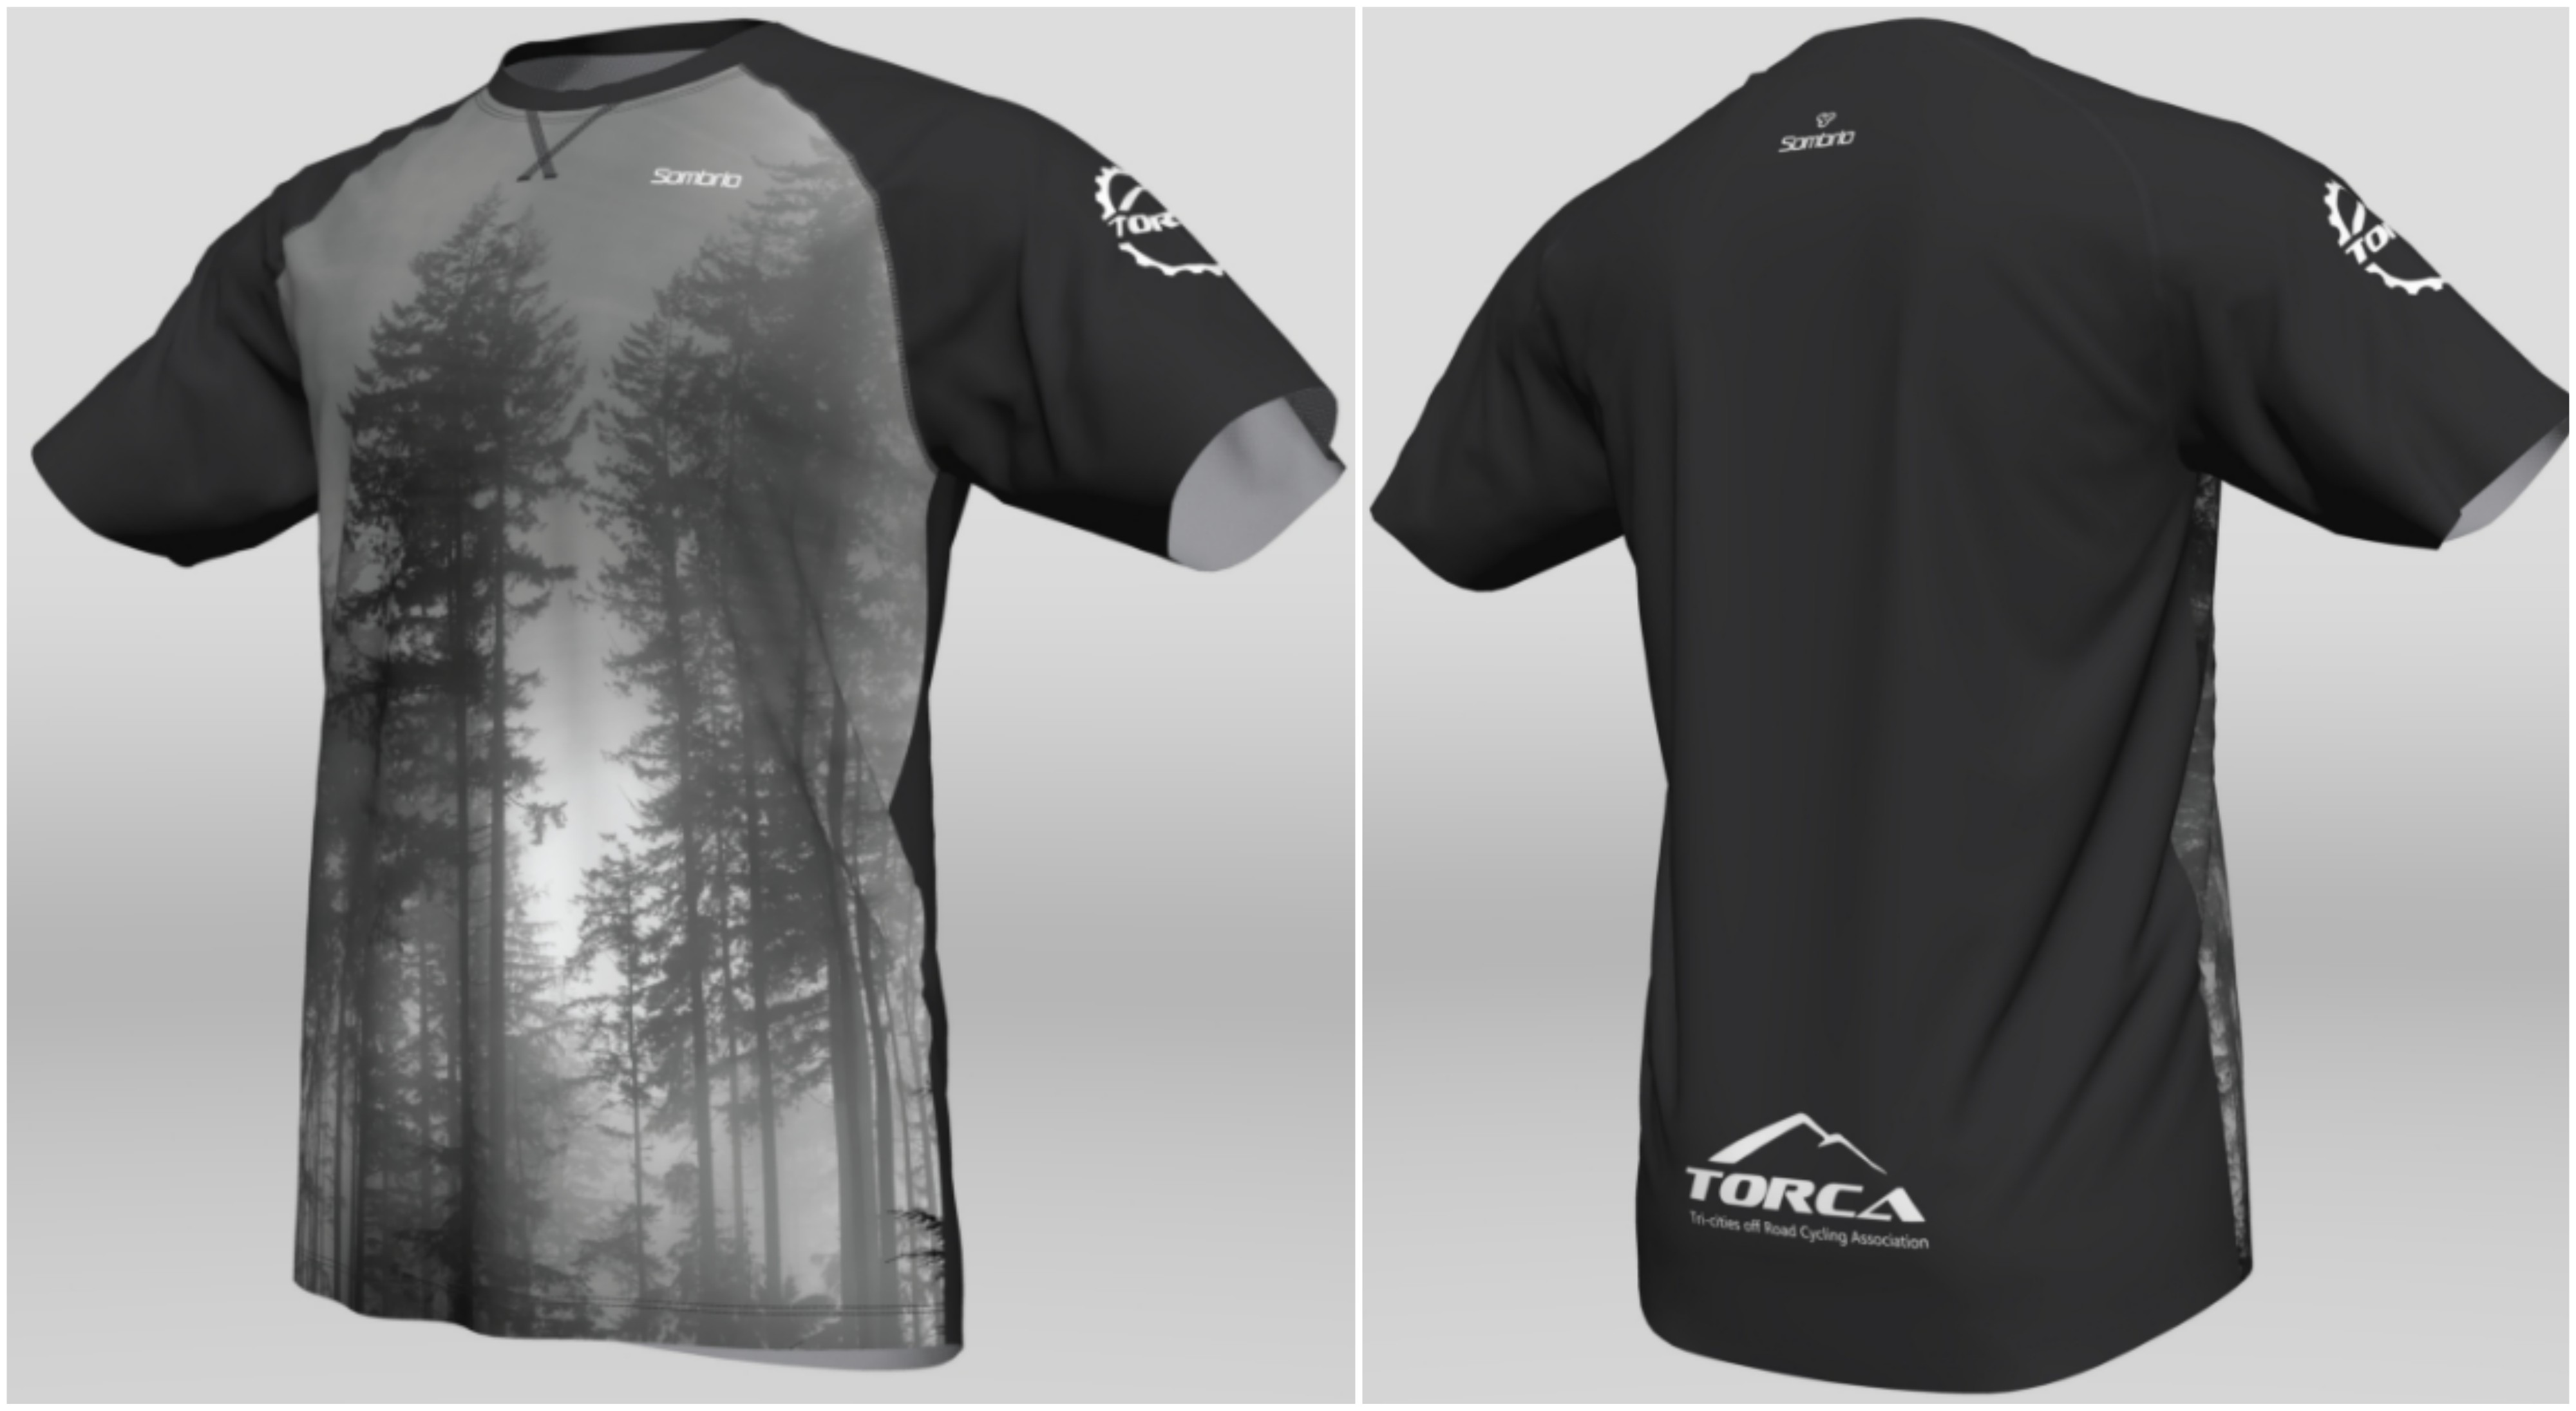 TORCA Limited Special Edition bike jersey